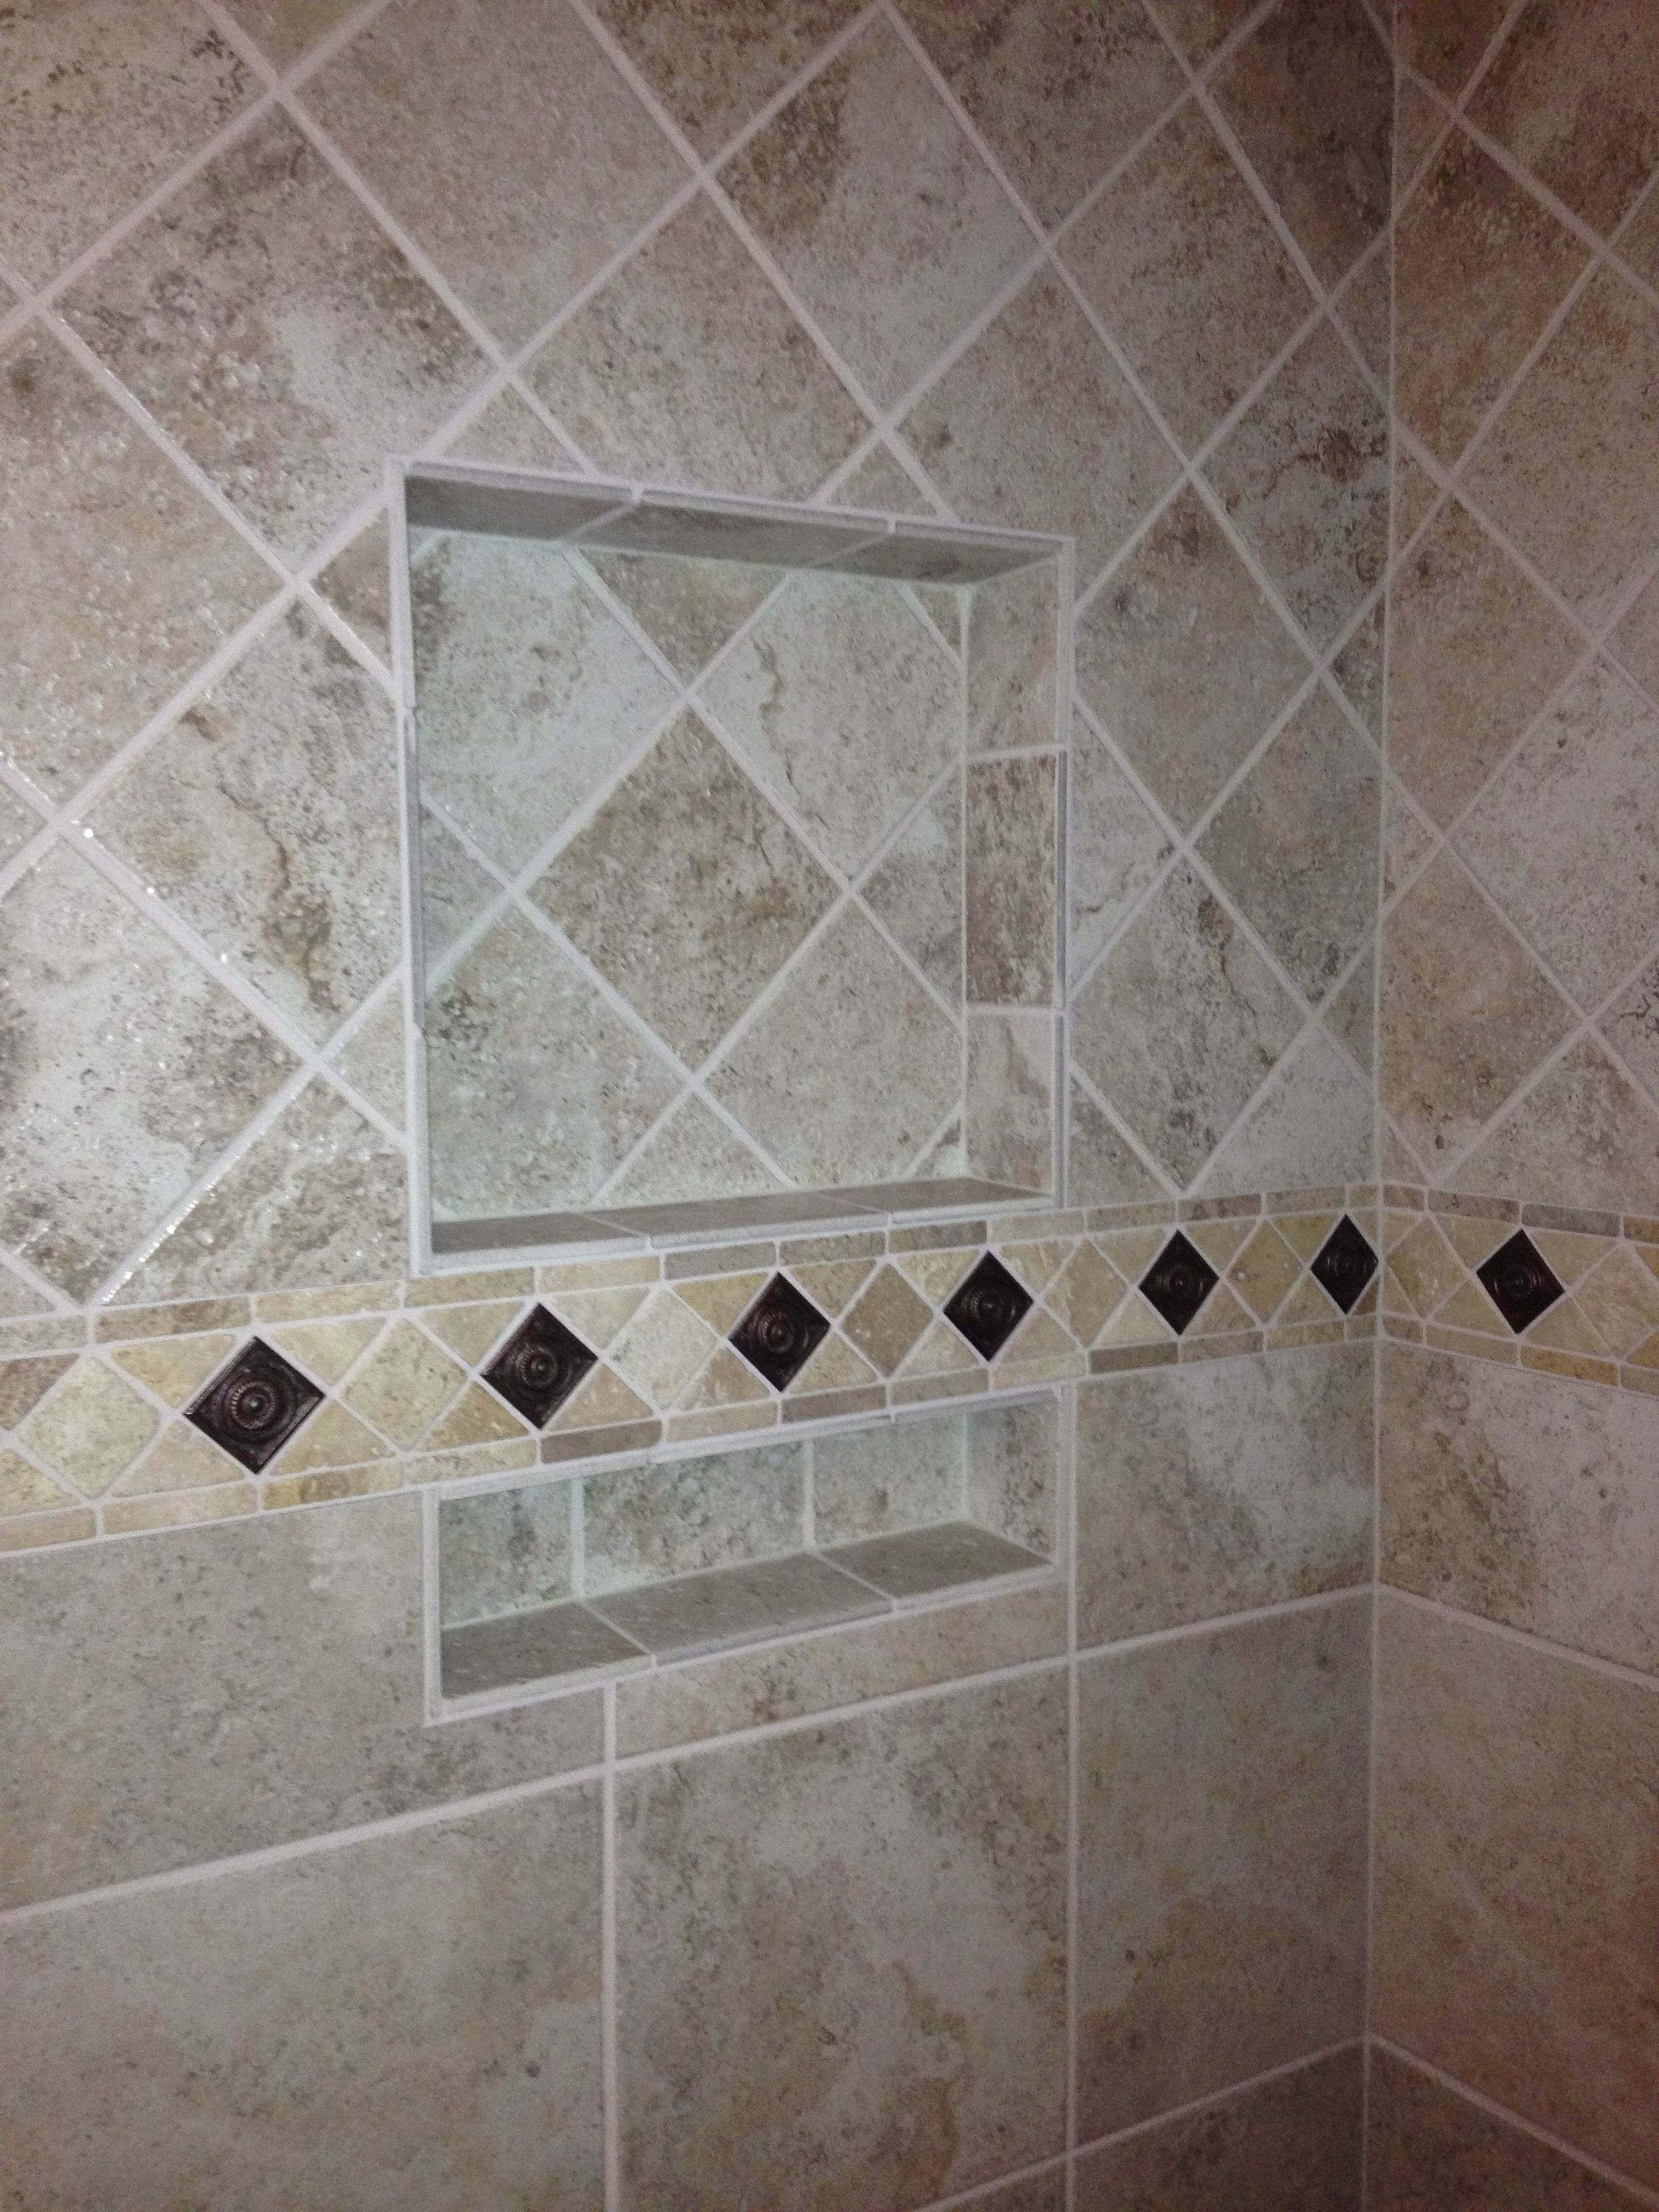 Tile pattern change upper tile diamond pattern lower Tiles arrangement for bathroom